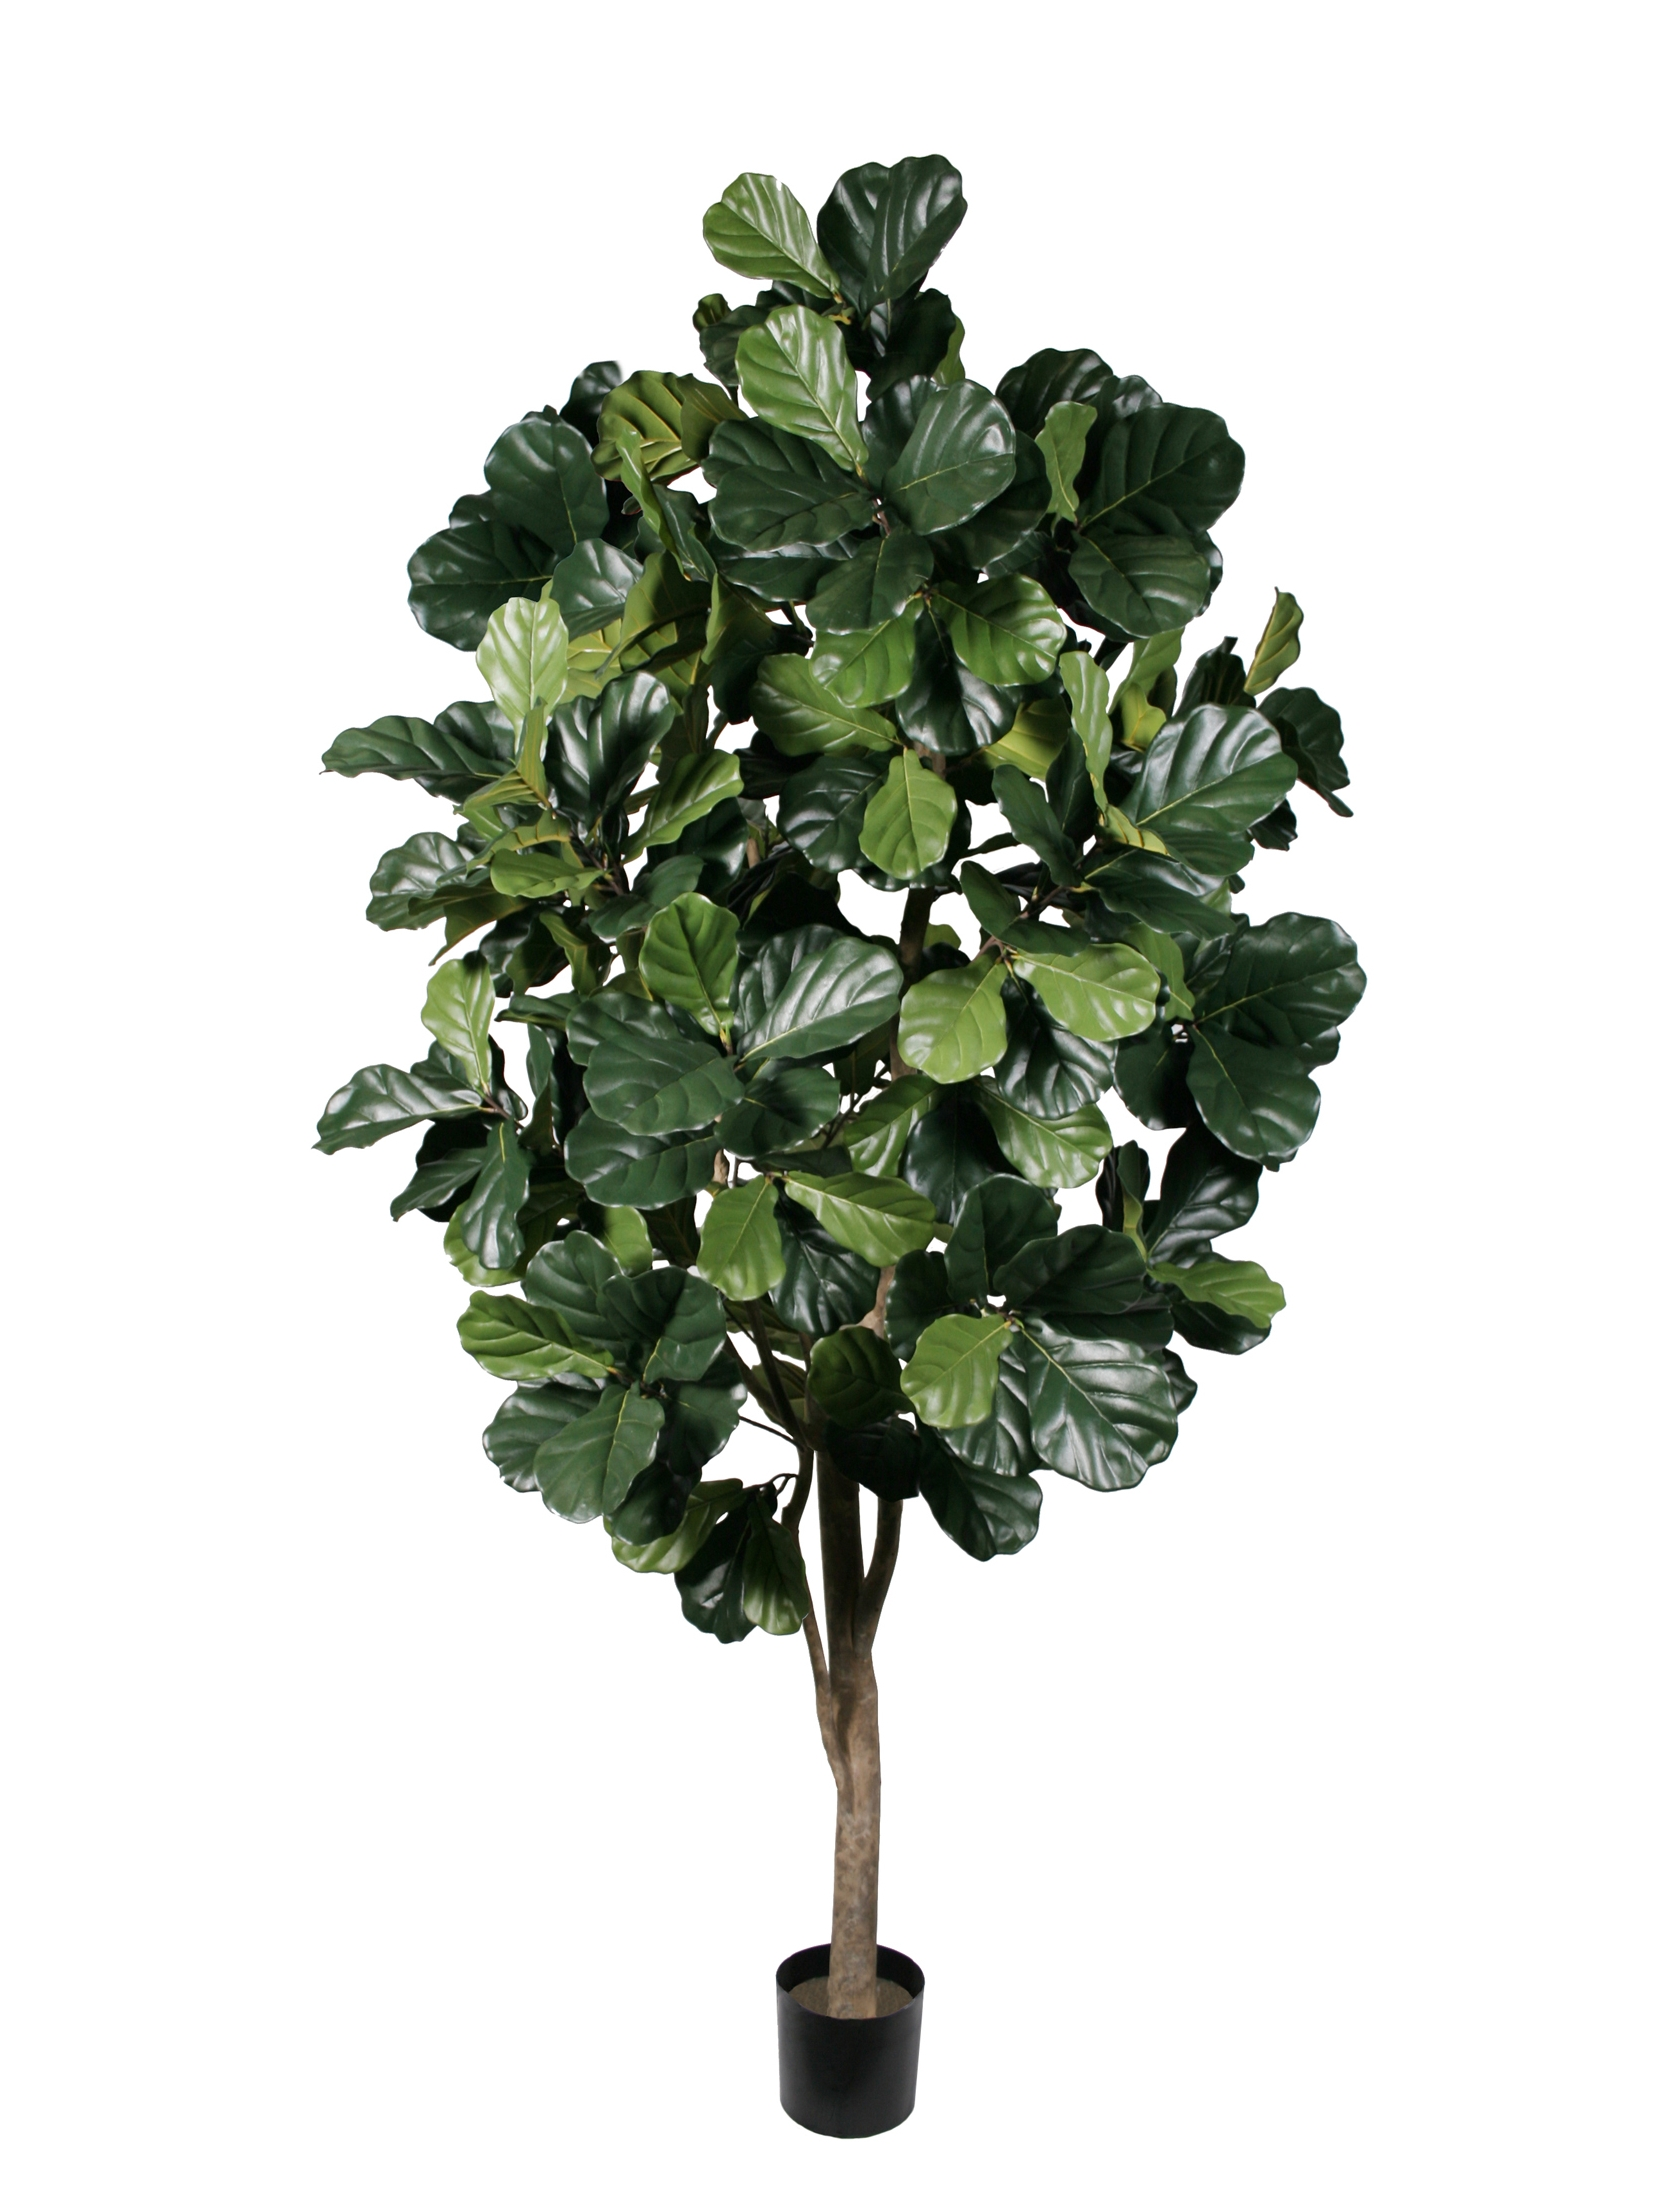 TSP 1679- Fiddle Leaf tree